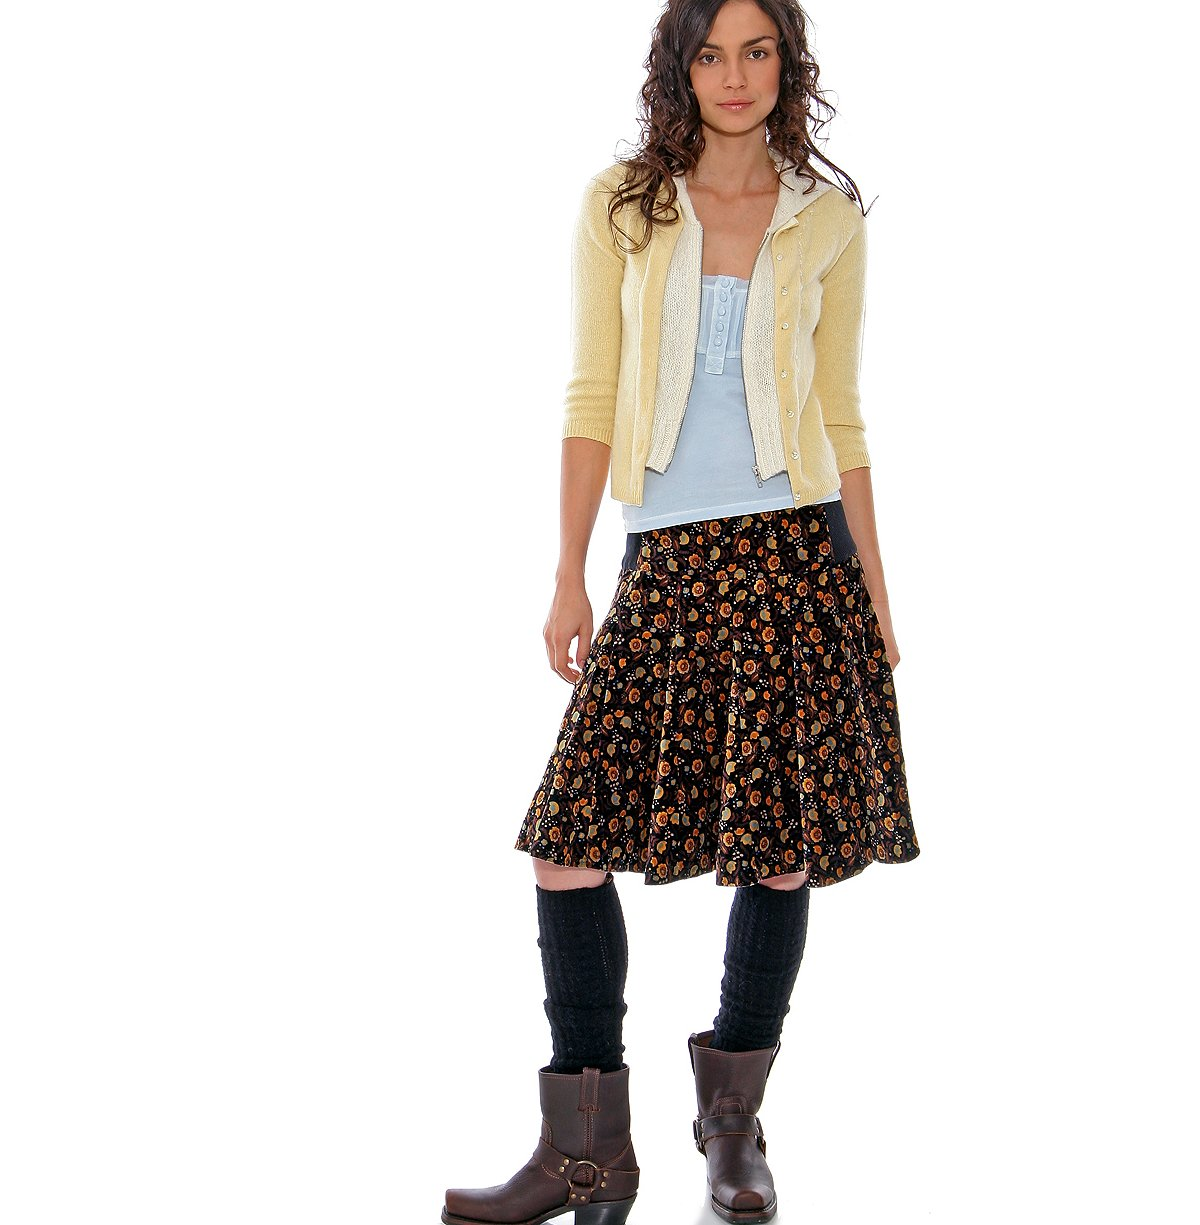 Pull on Velveteen Flowers Skirt